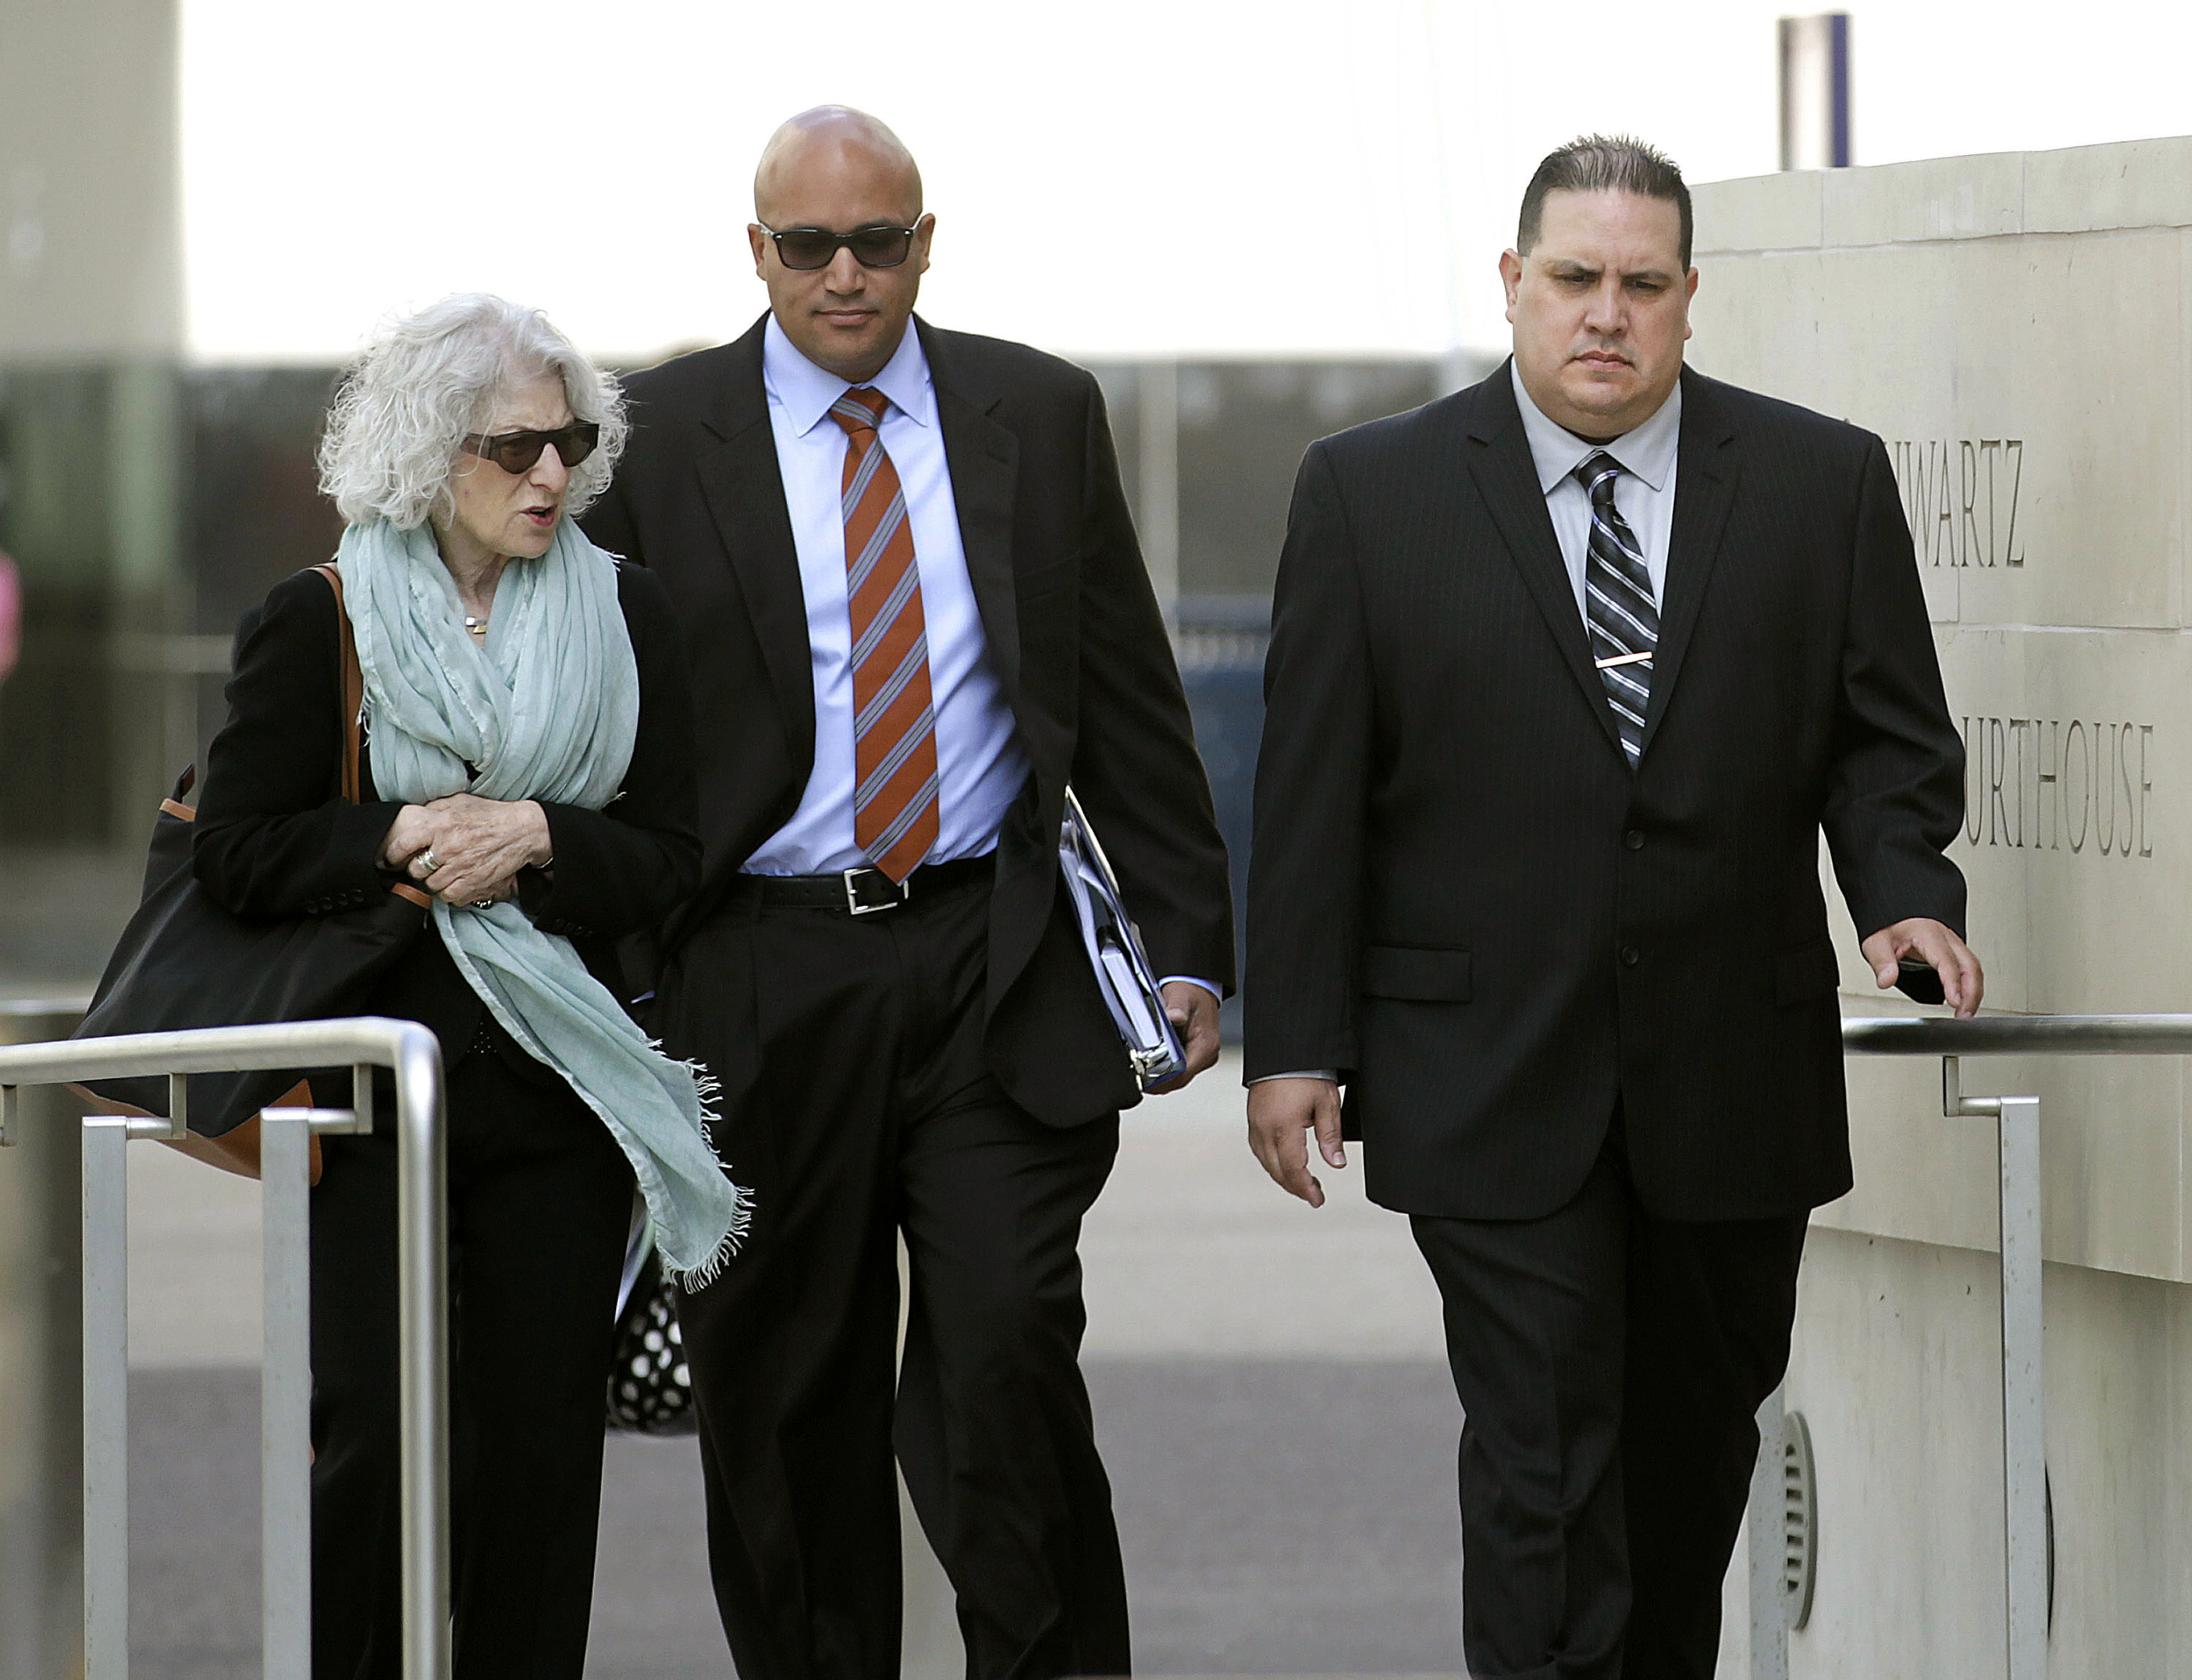 In this photo taken on Nov. 20, 2013, Navy Cmdr. Jose Luis Sanchez, right, walks with unidentified individuals in San Diego, Calif.